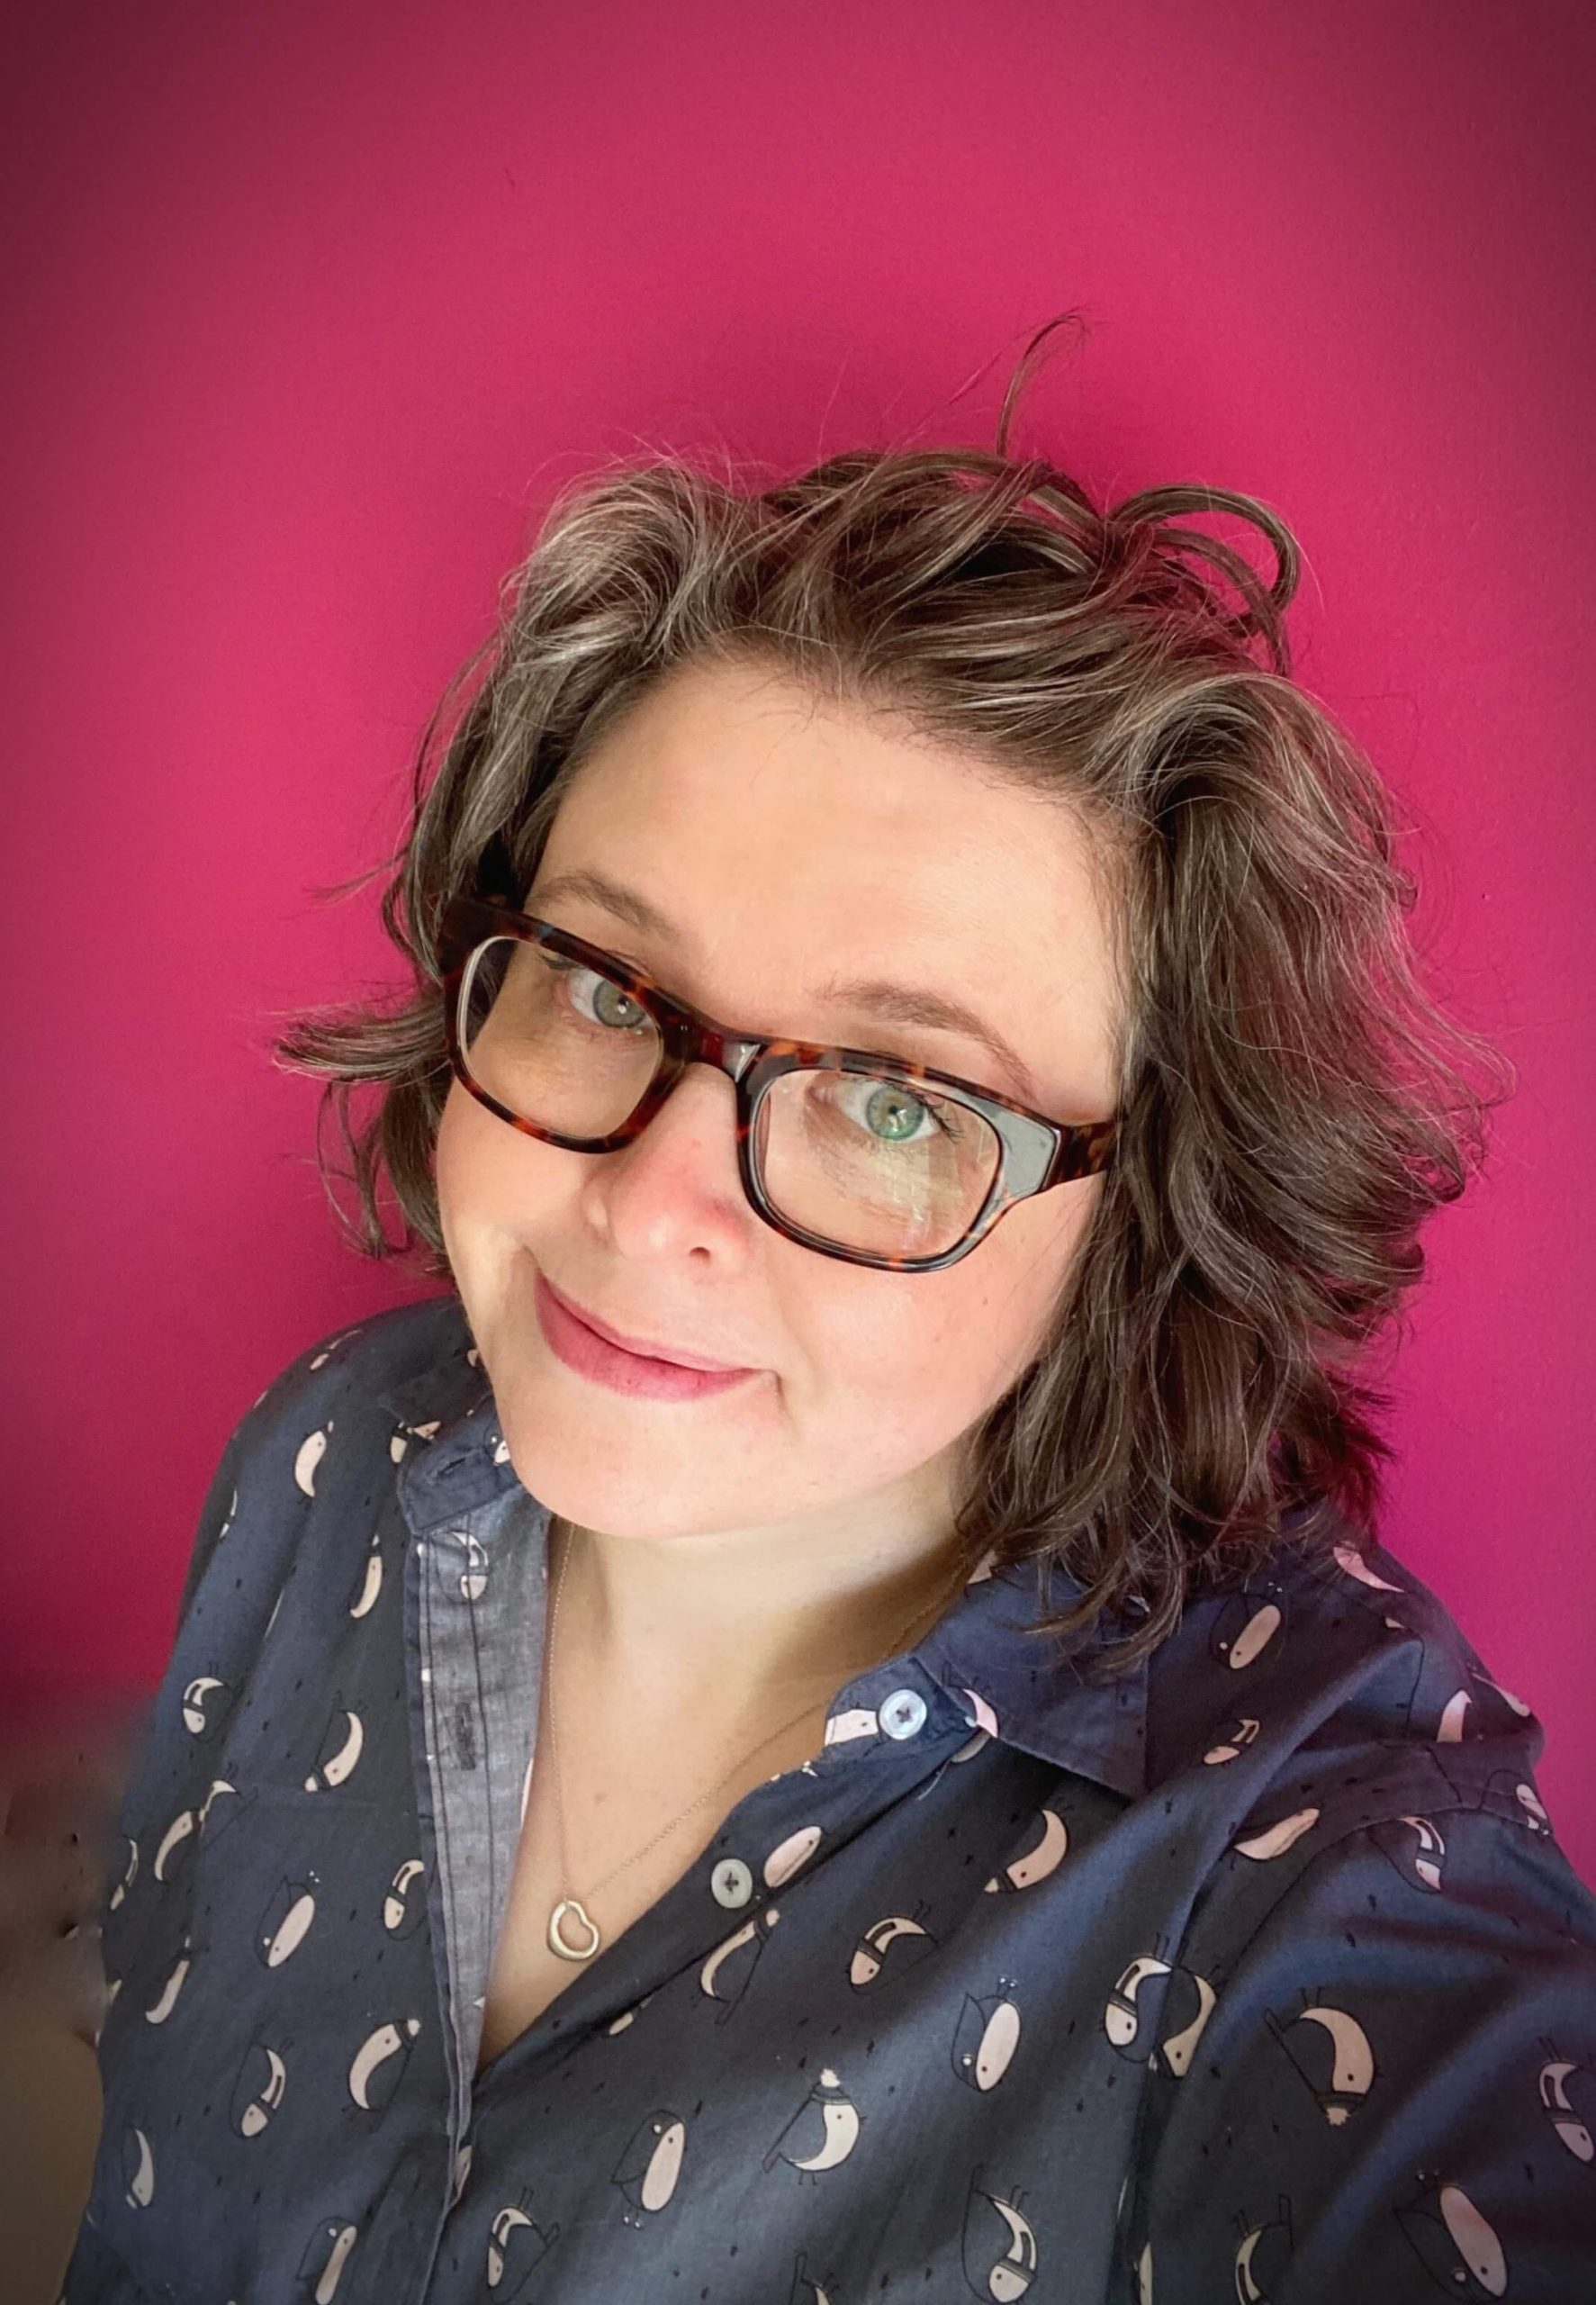 M.J. standing in front of a pink wall. She is smiling, her hair is short and wavy and she's wearing tortoiseshell chunky glasses anda  navy shirt with pink cartoon robins